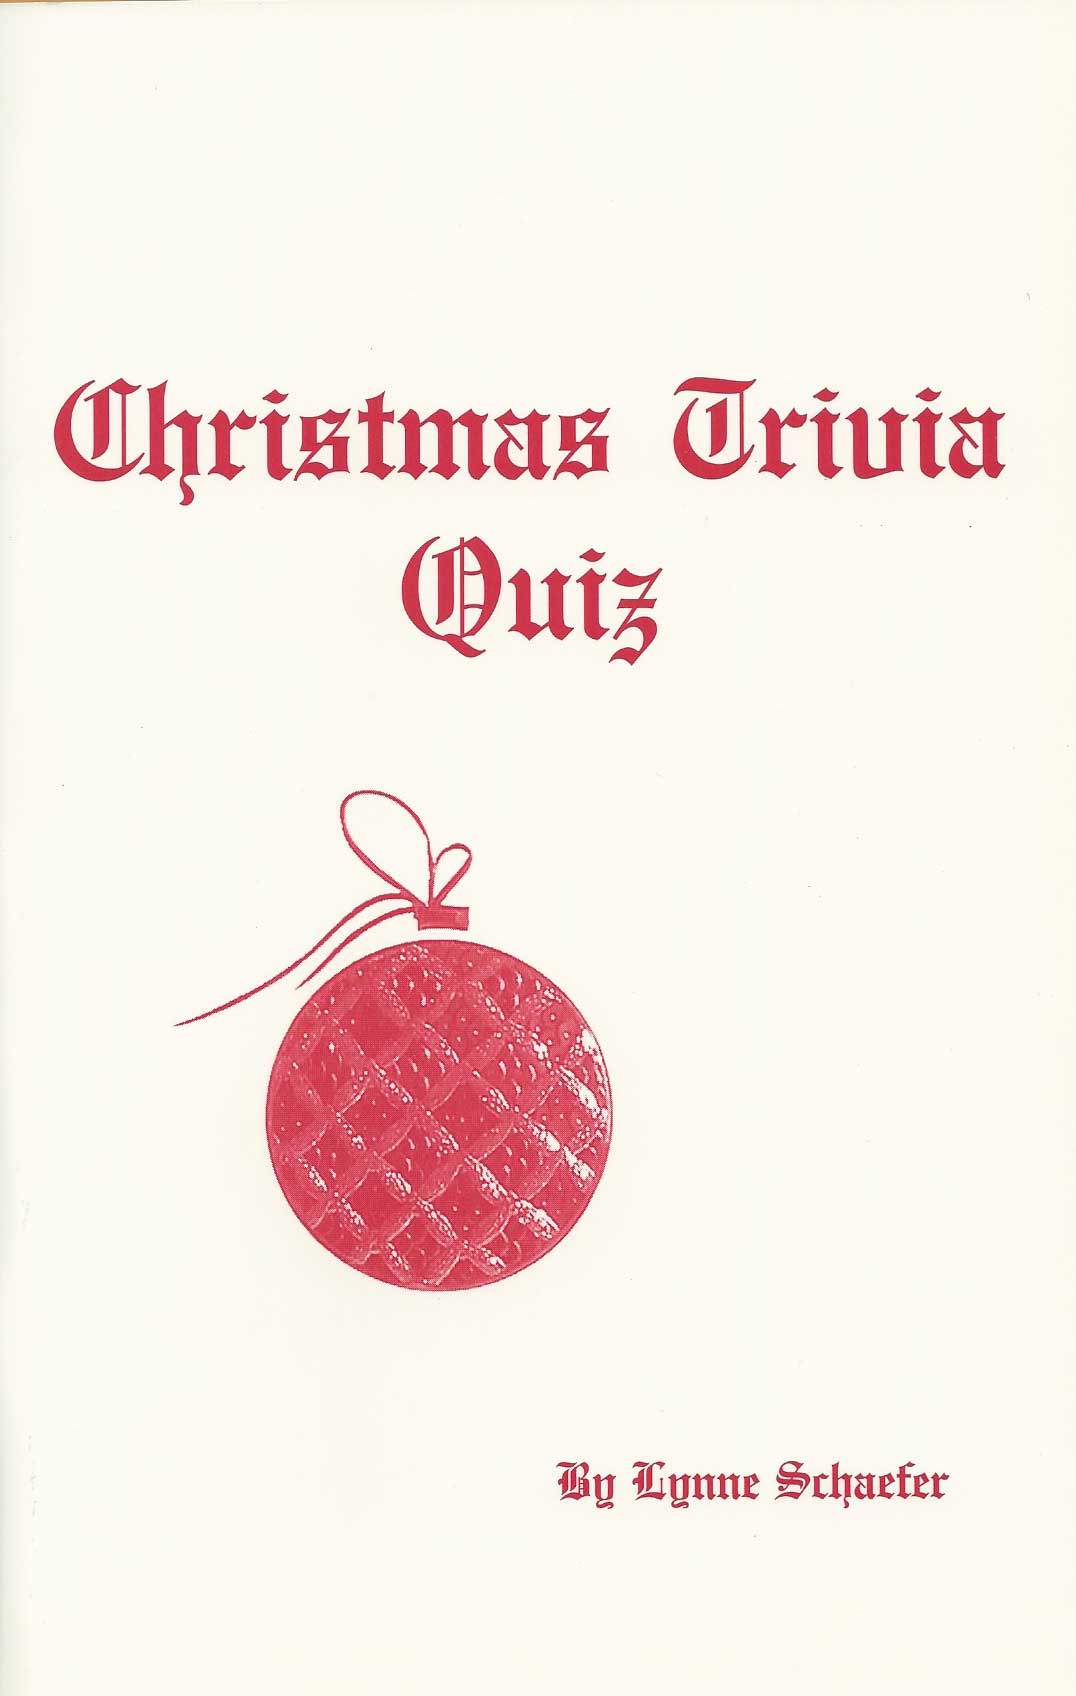 Christmas Triva Quiz booklet